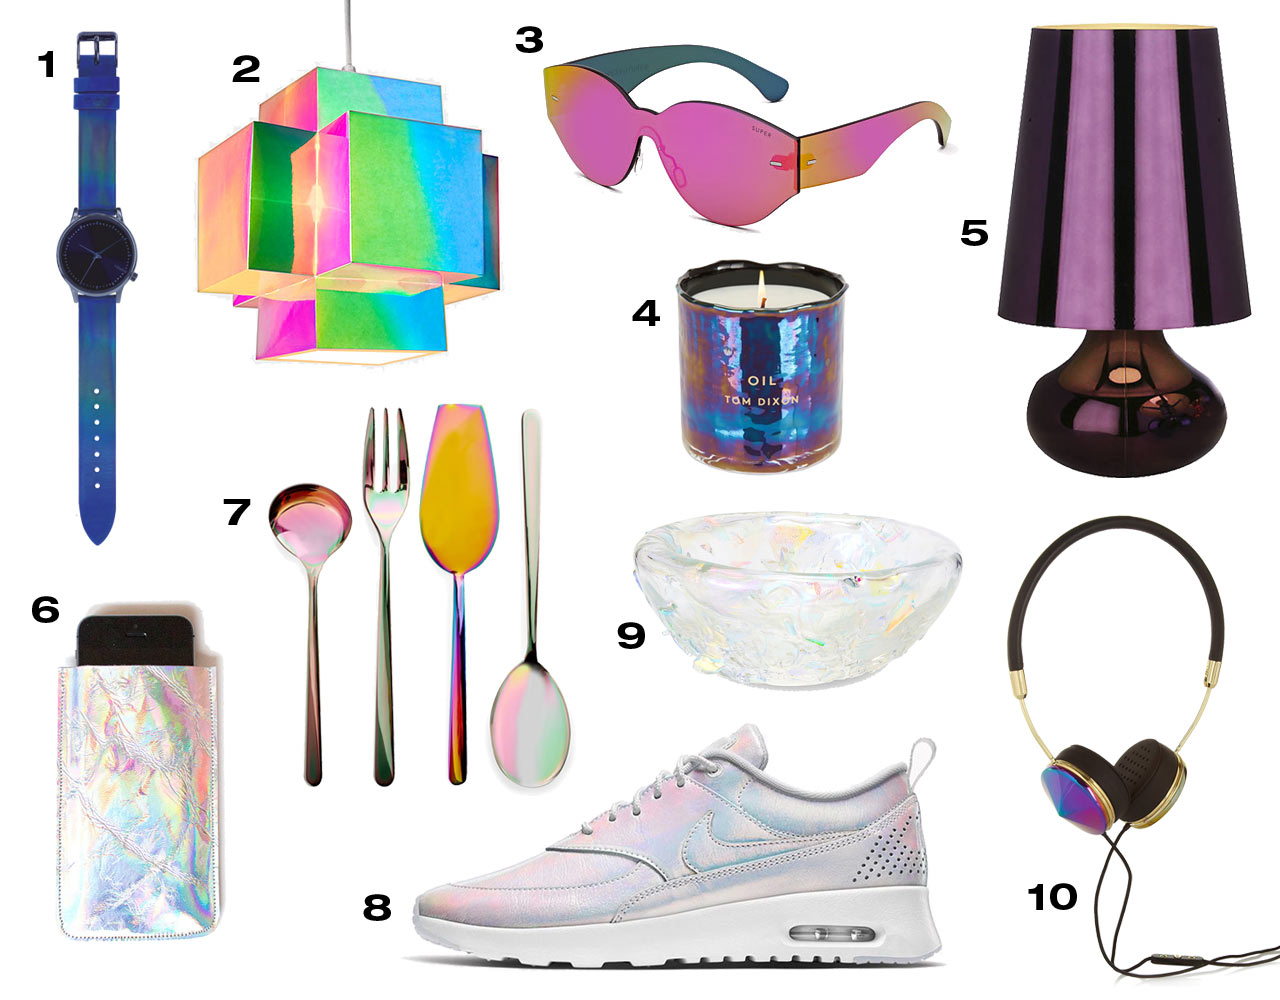 Ooh Shiny: 10 Modern Iridescent Designs